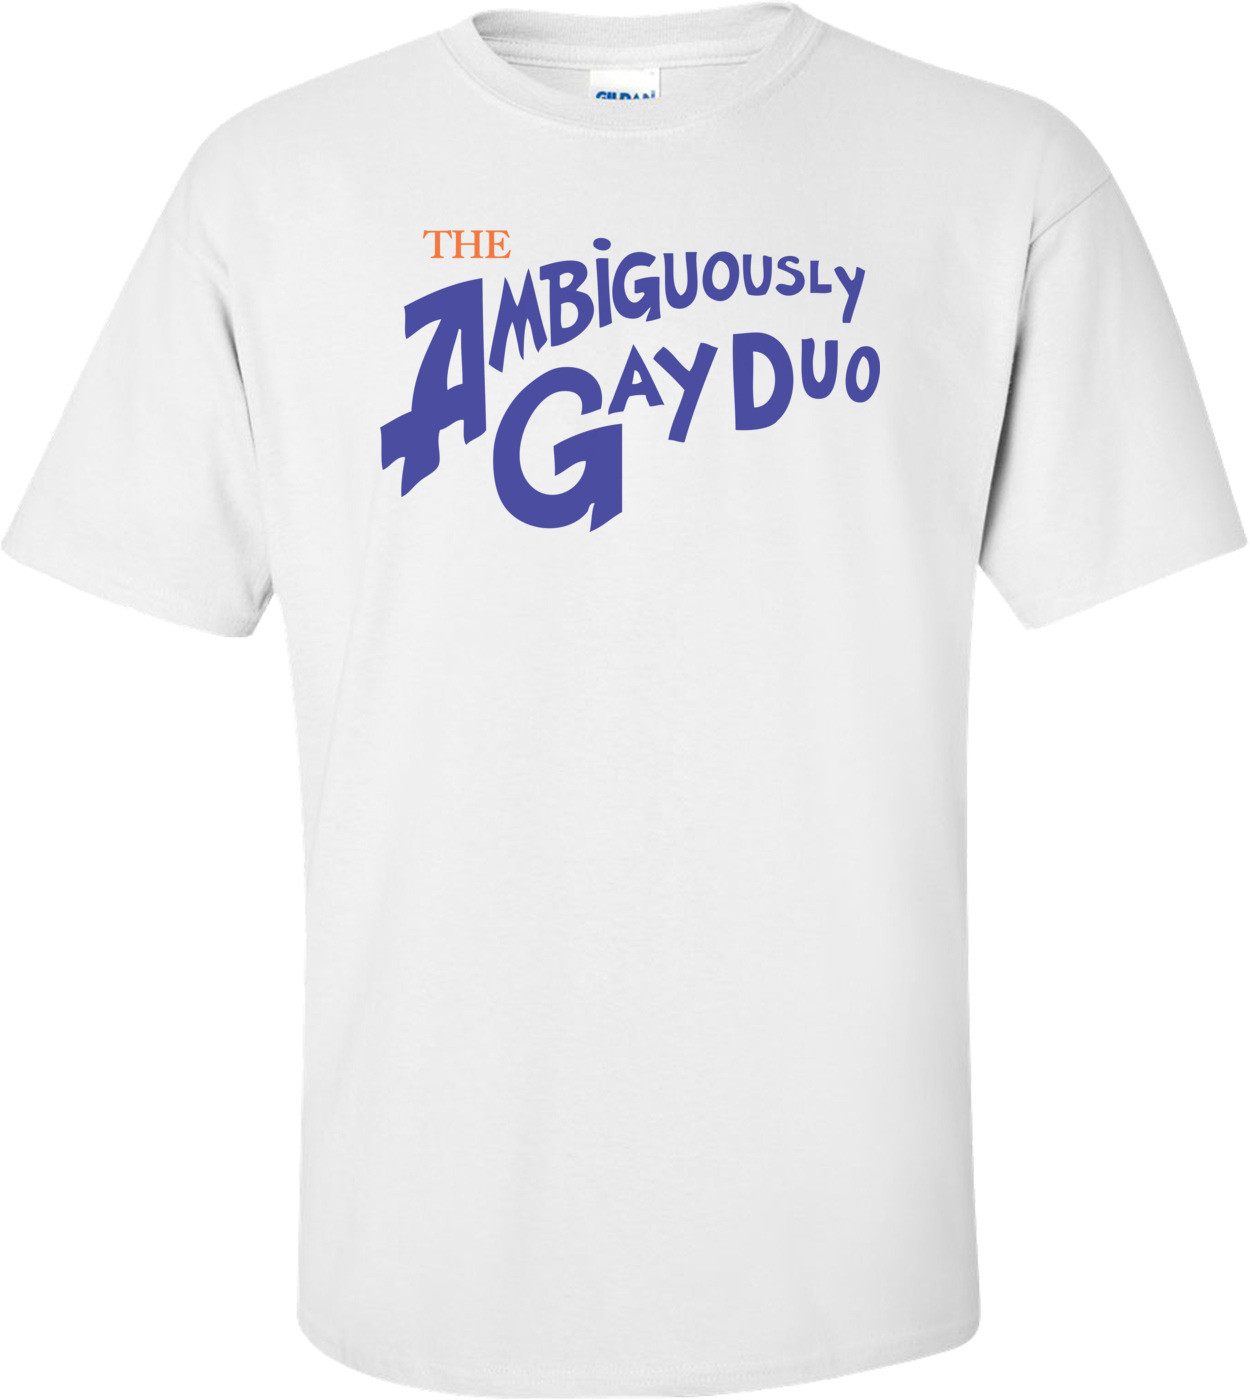 The Ambiguously Gay Duo T-shirt